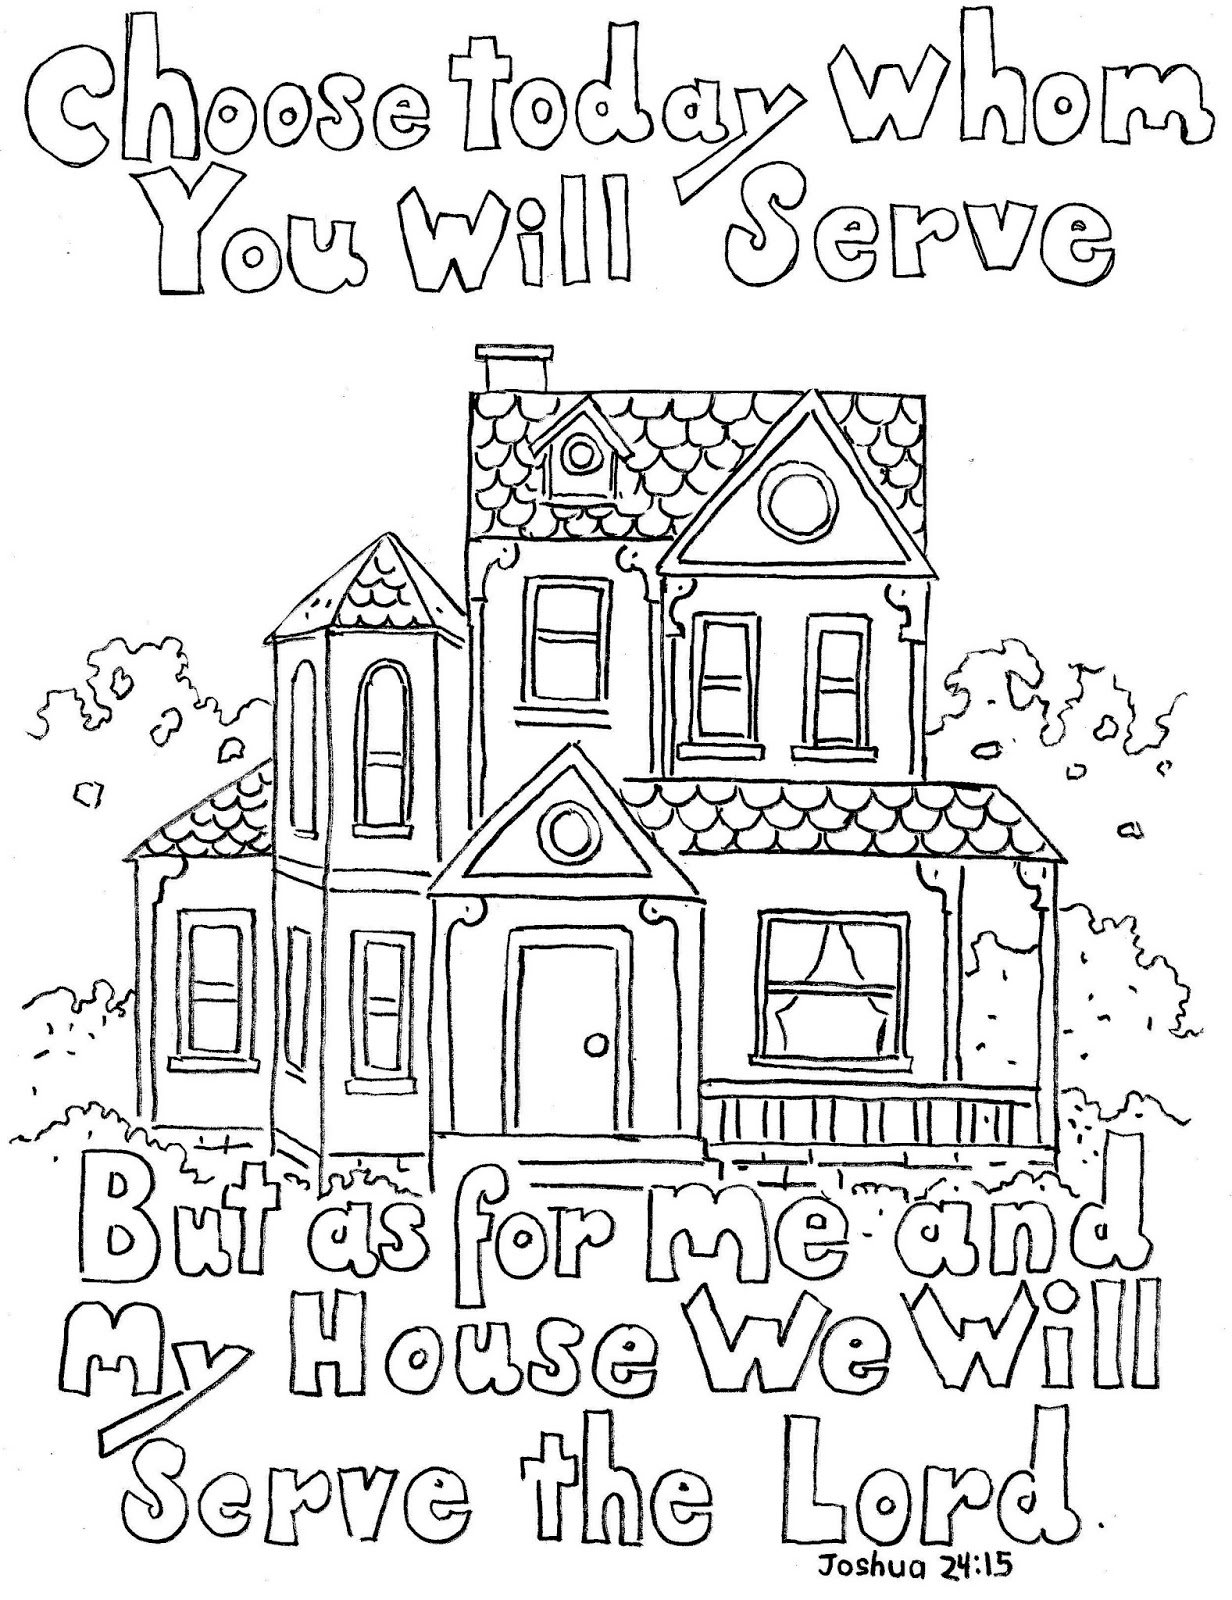 black and white clipart of as for me and my house we shall